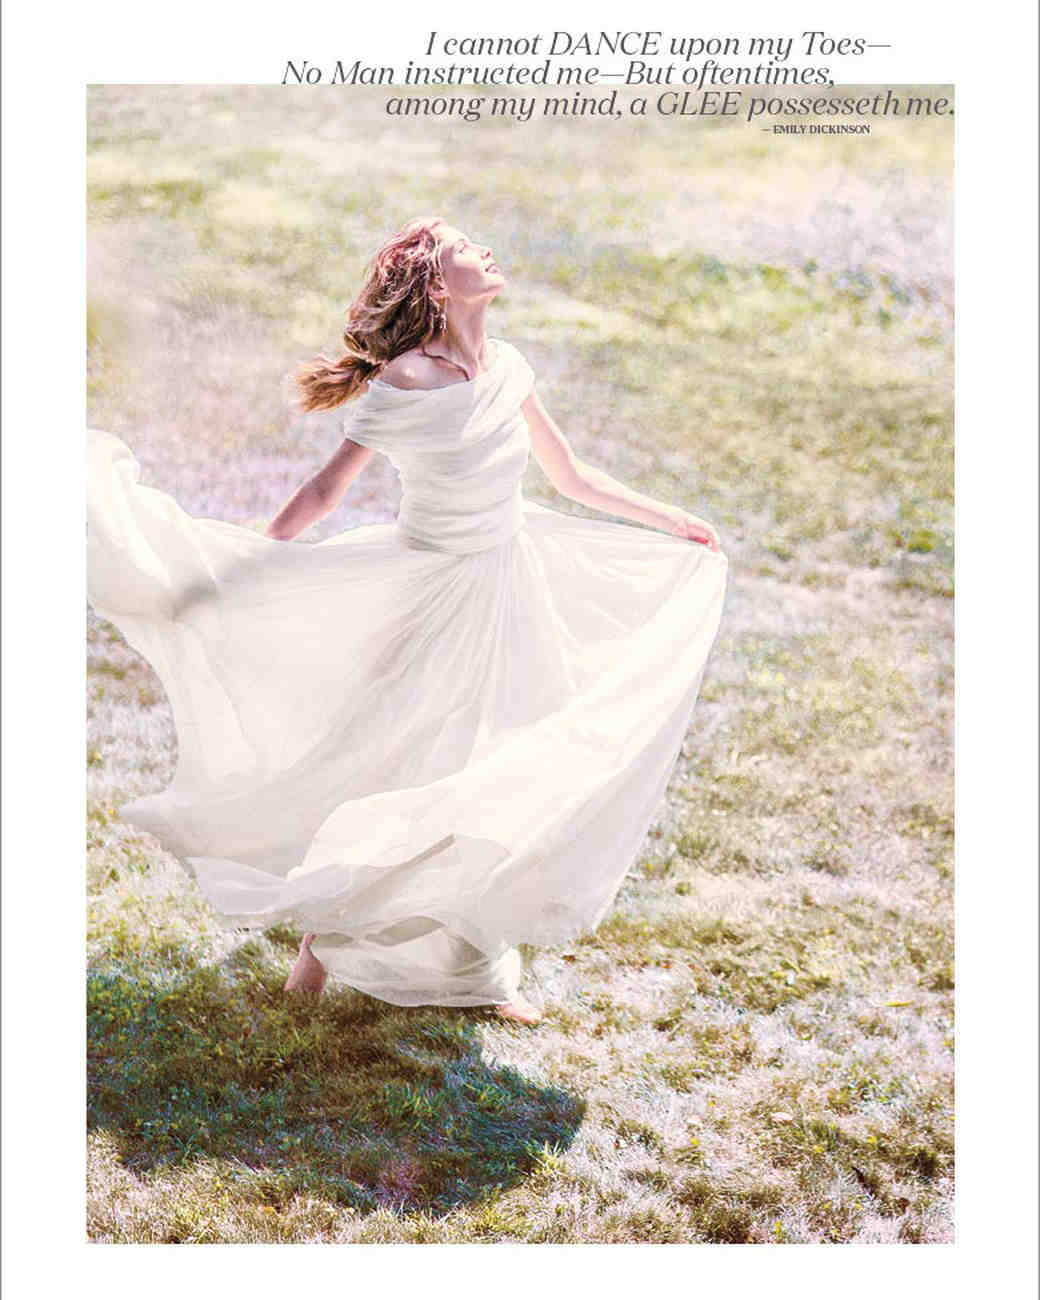 winter-fashion-poetic-quotes-emily-dickinson-dancing-glee-0216.jpg